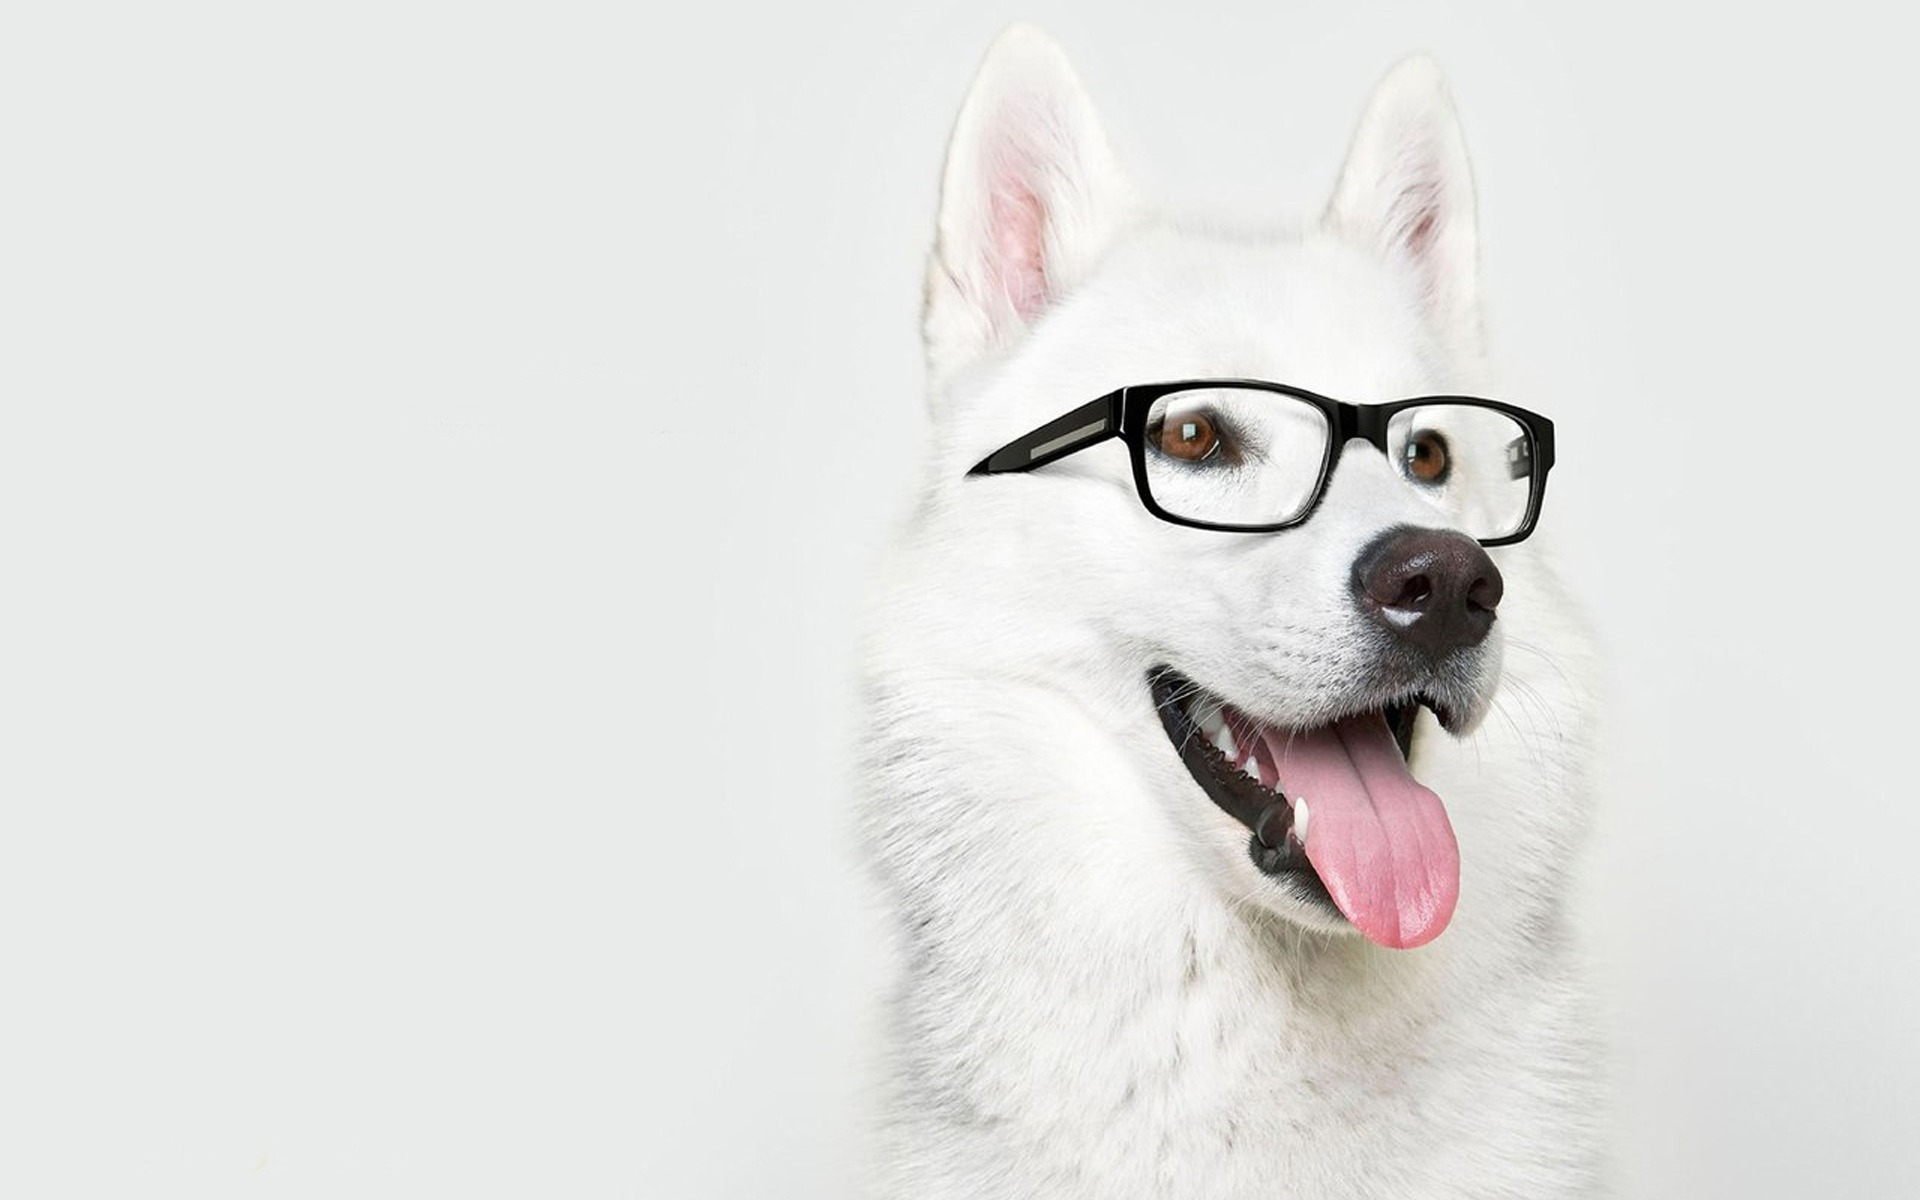 Awesome Dog with Glasses Wallpaper